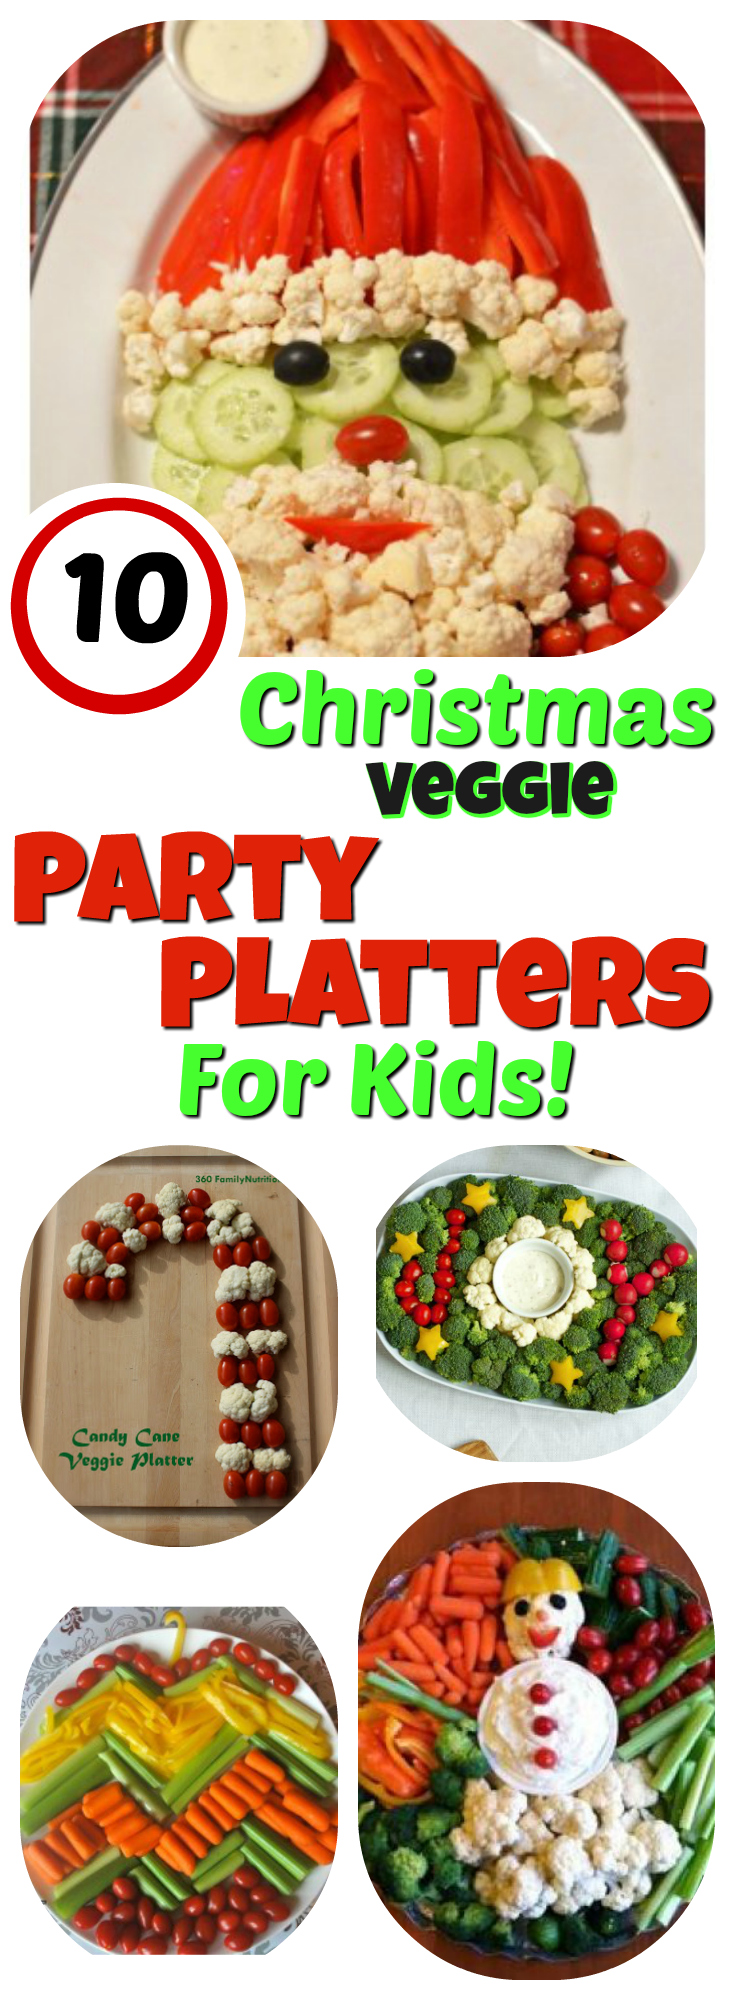 Veggie Platters For Kids: 10 Christmas Party Trays